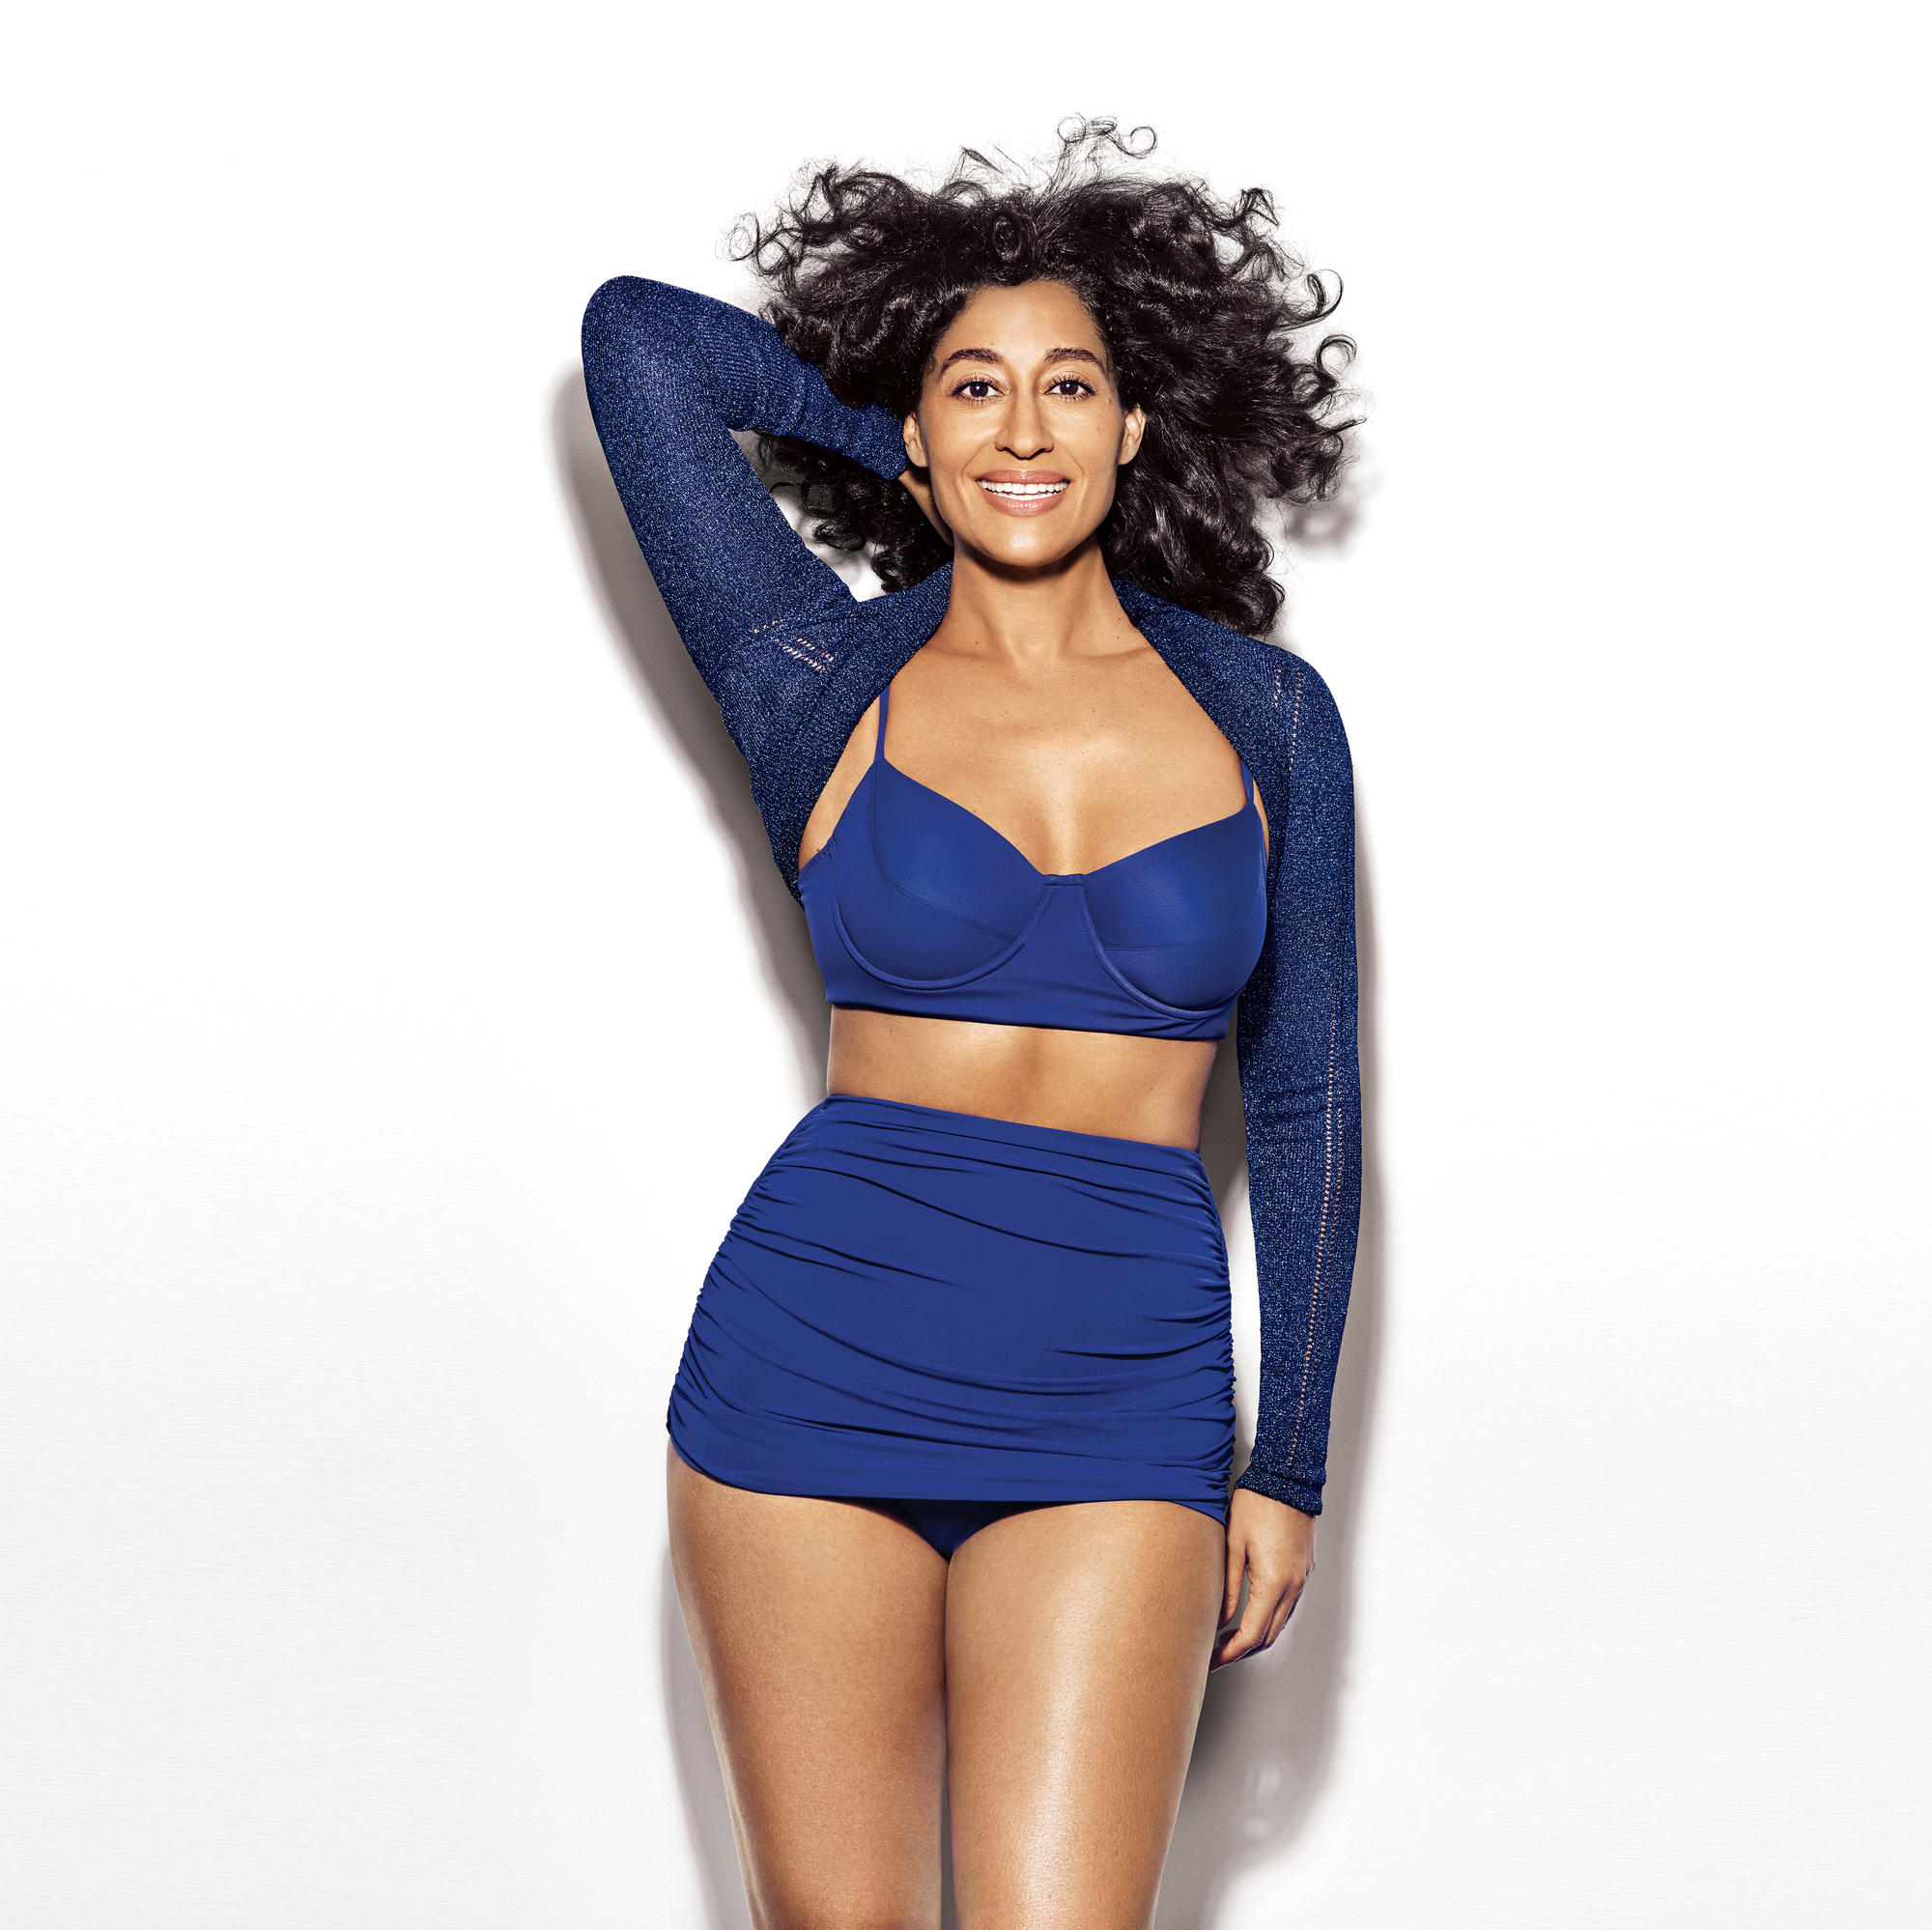 Image result for tracee ellis ross health magazine